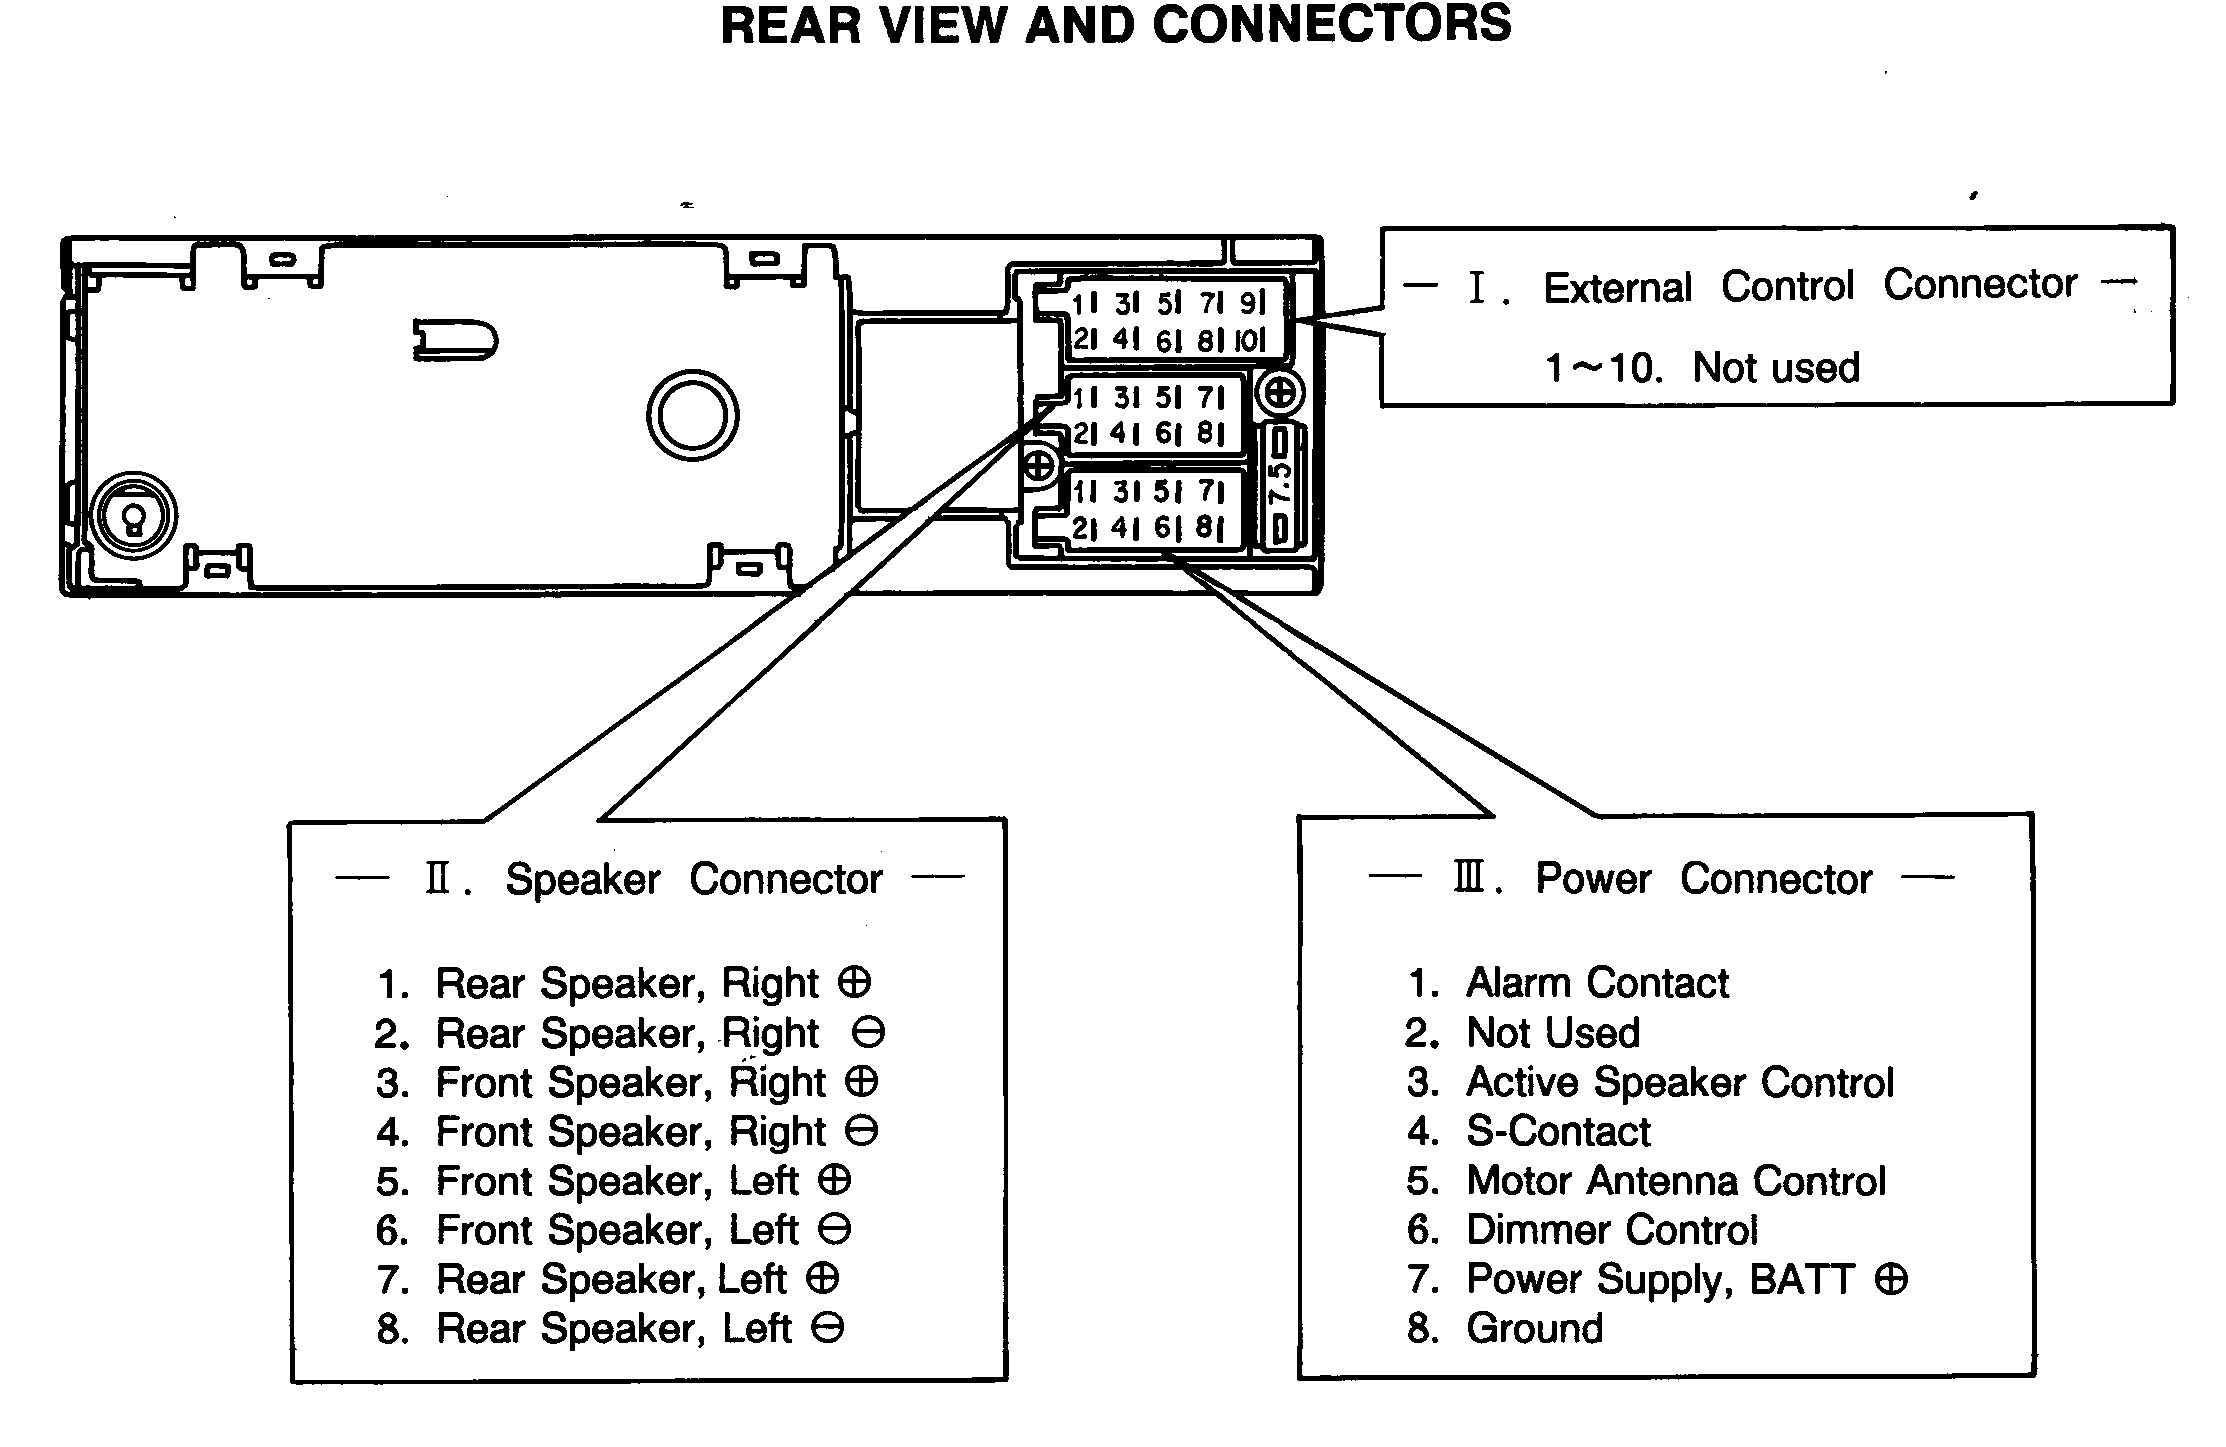 Audi A4 Bose Amp Wiring Diagram New Attractive Diagram Car Stereo Wiring Vignette Simple Wiring